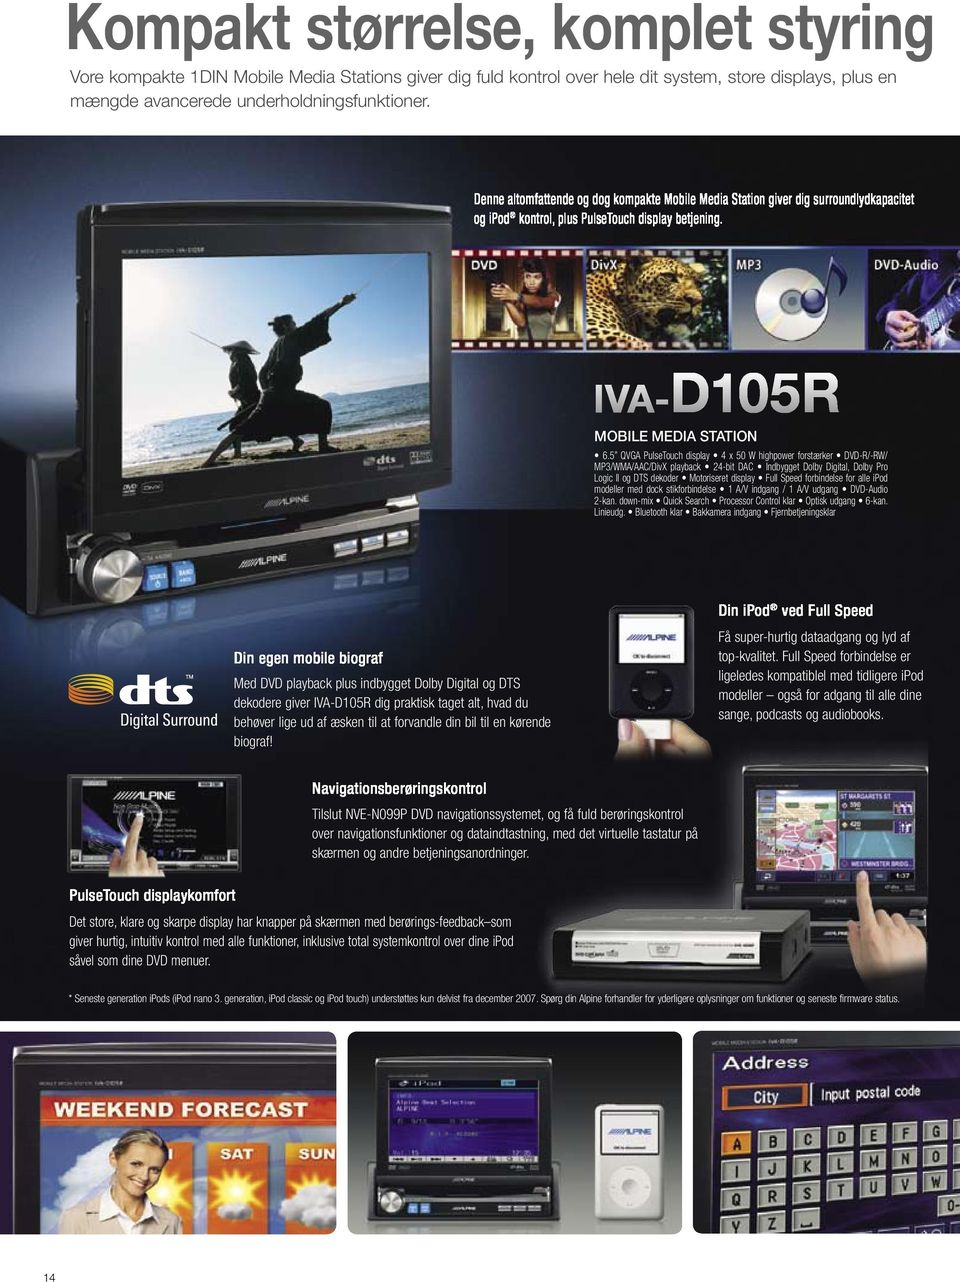 5 QVGA PulseTouch display 4 x 50 W highpower forstærker DVD-R/-RW/ MP3/WMA/AAC/DivX playback 24-bit DAC Indbygget Dolby Digital, Dolby Pro Logic II og DTS dekoder Motoriseret display Full Speed